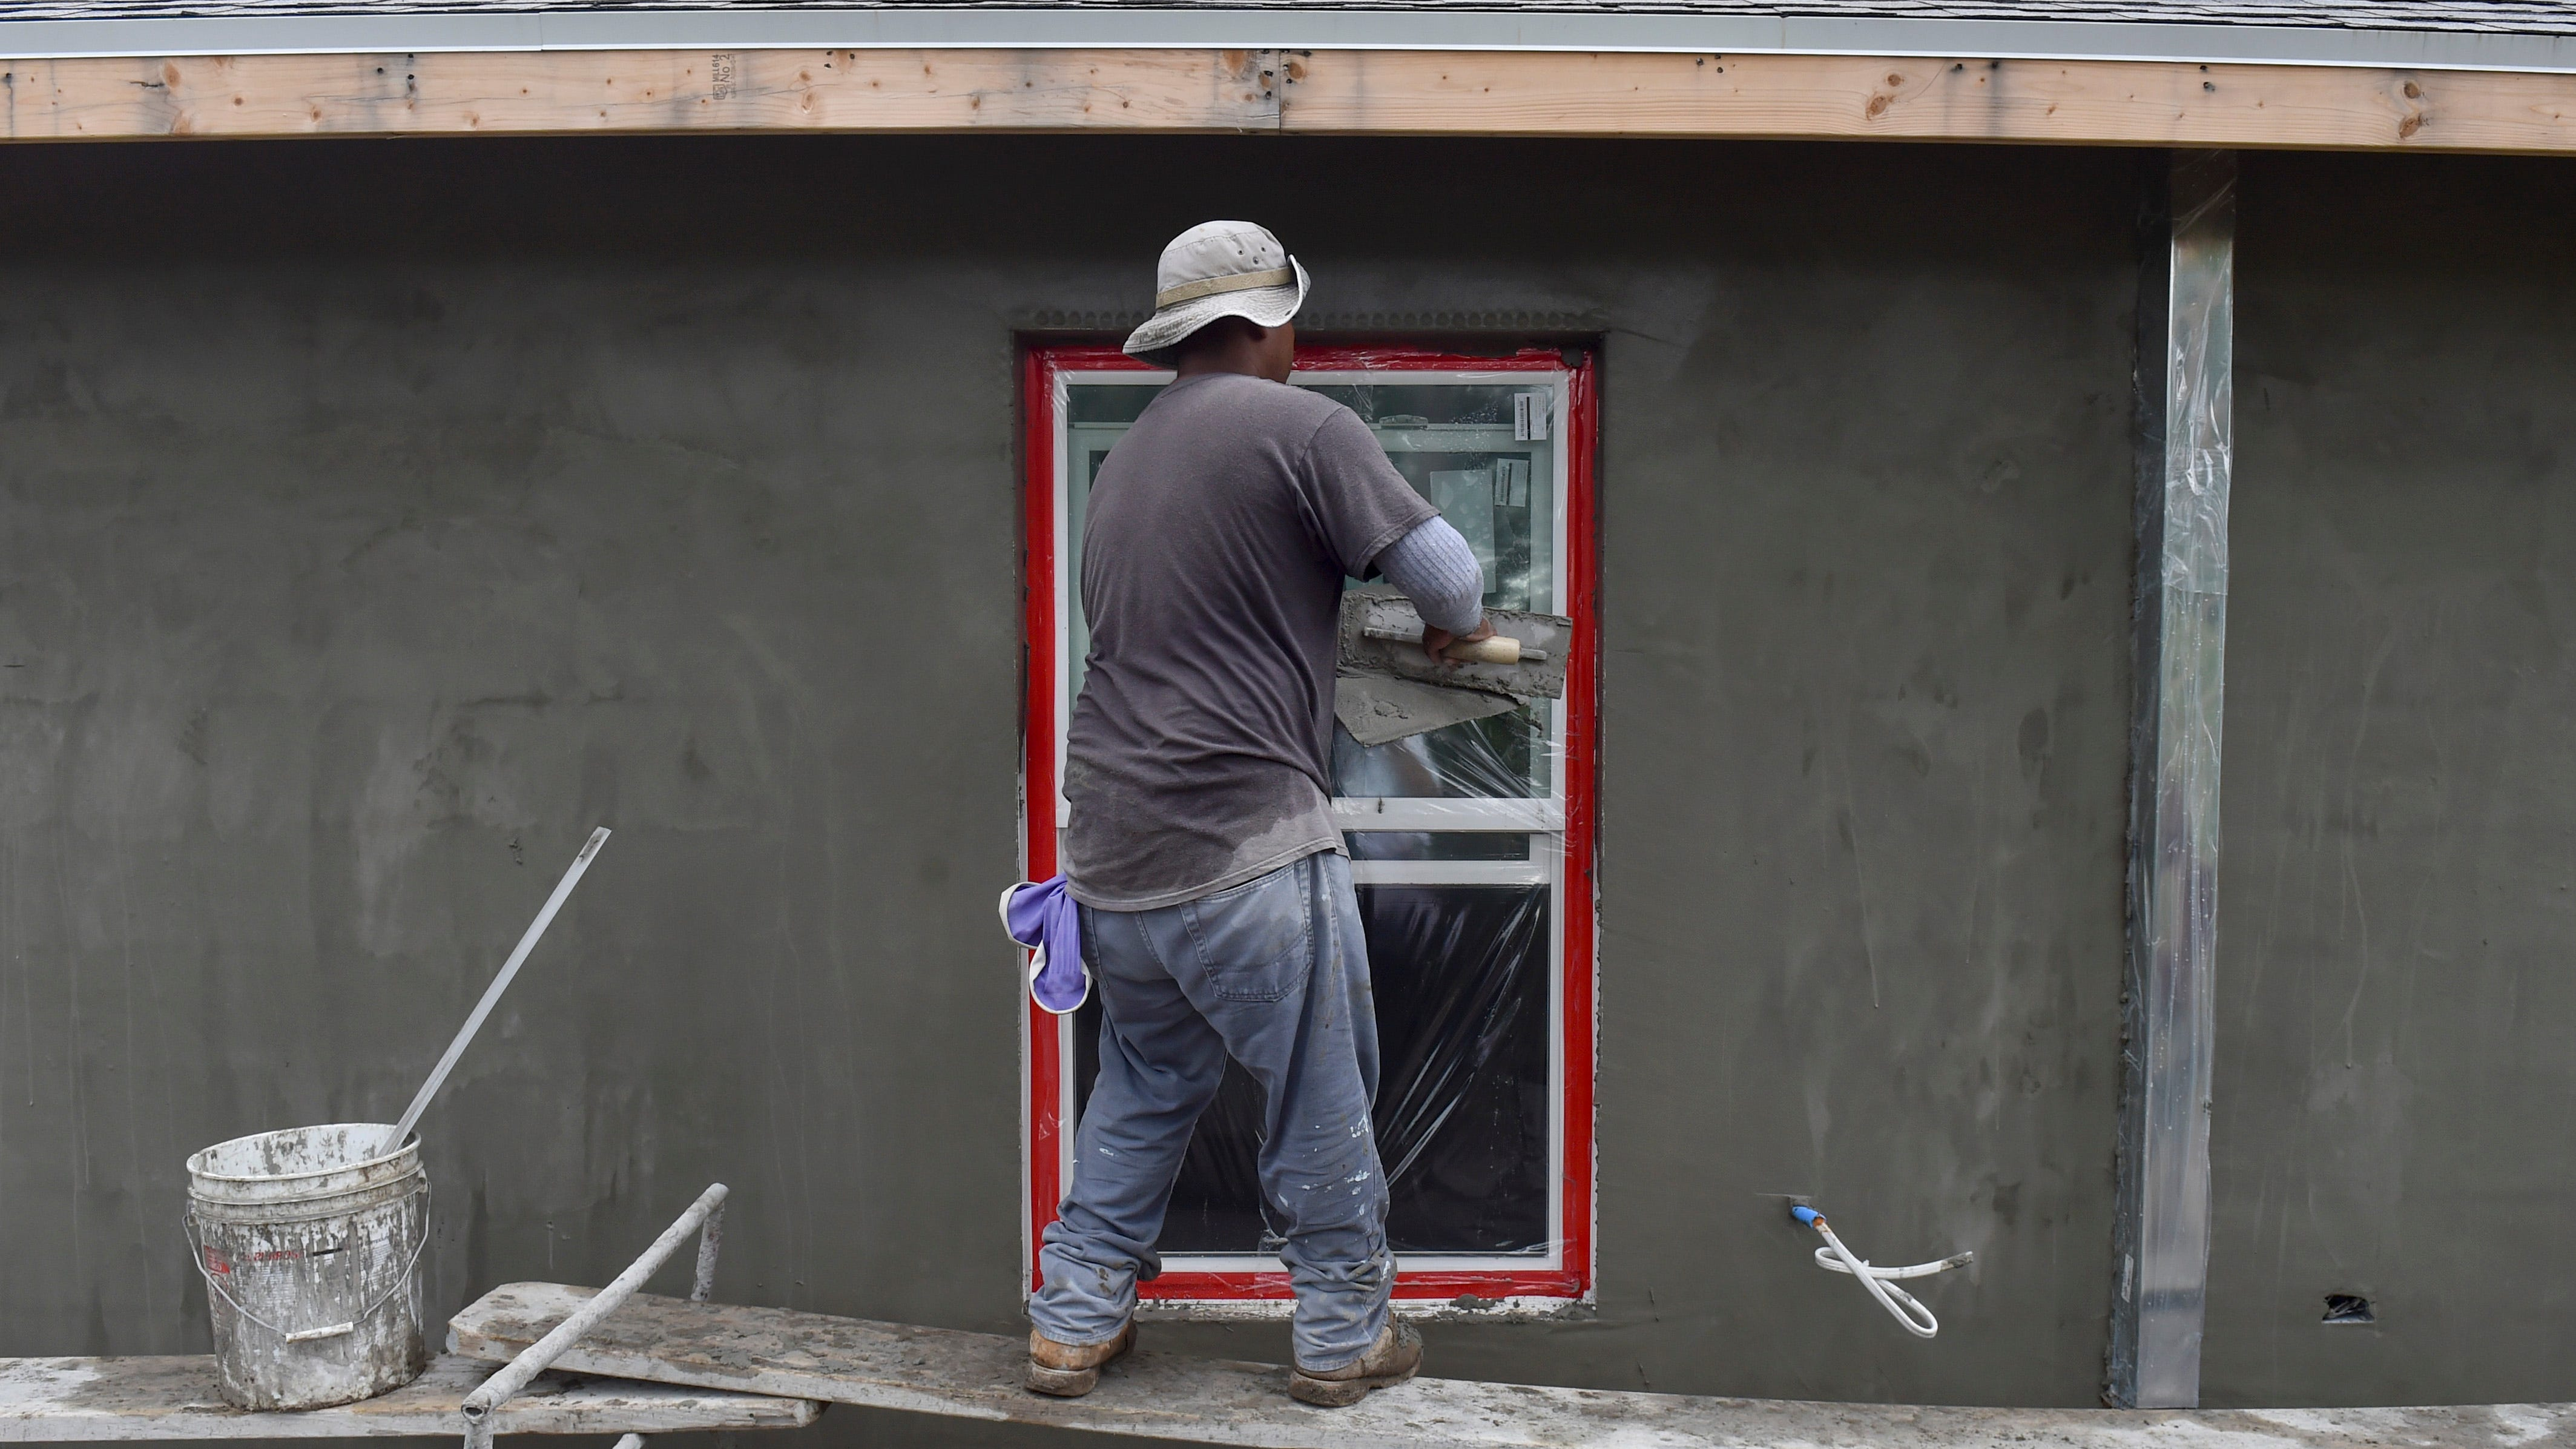 Florida is experiencing increases in home building, but that is driving up costs. It could get worse when the Panhandle begins rebuilding.